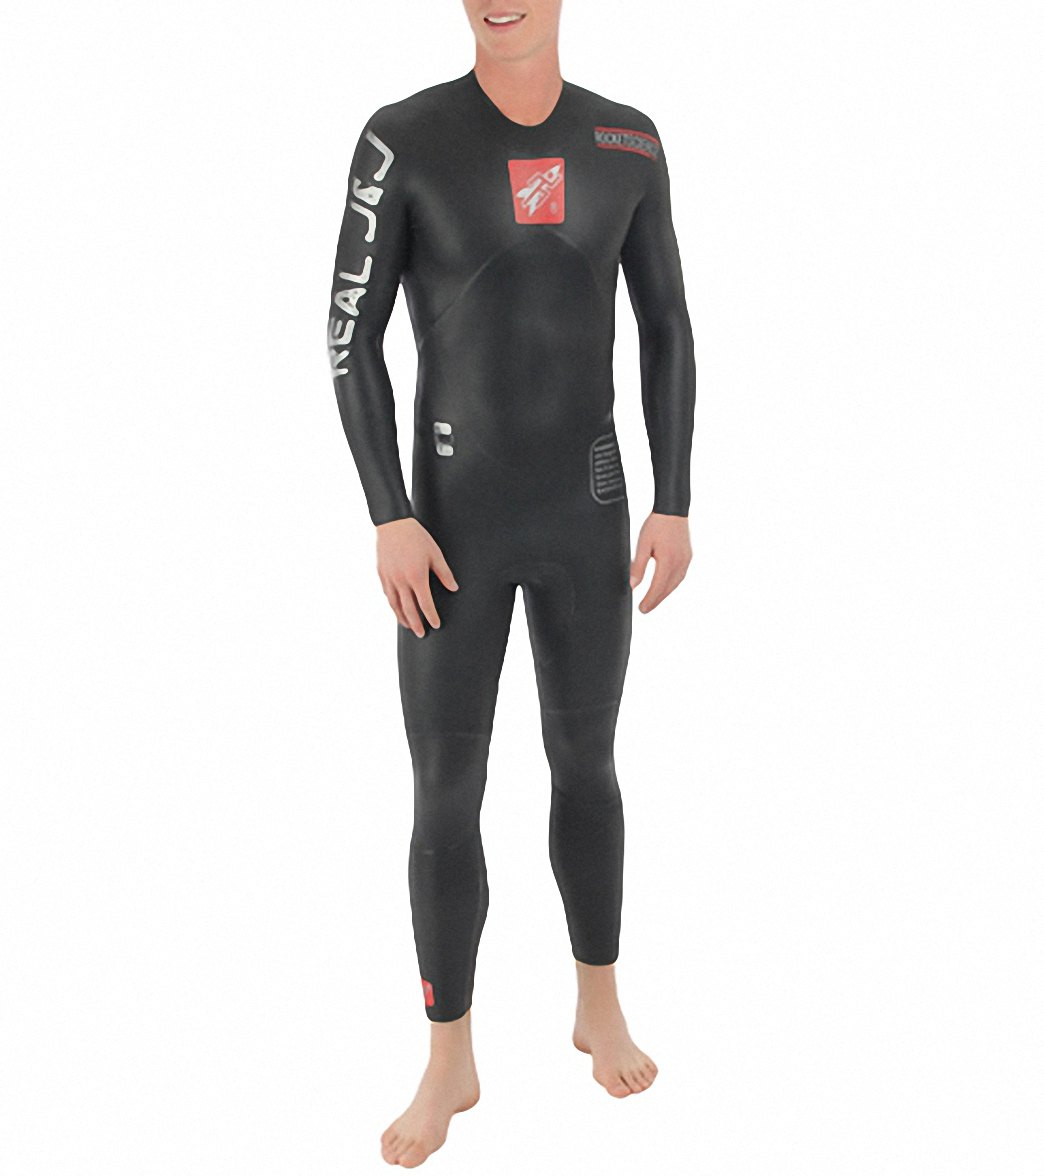 bbcf12f275 Rocket Science Sports Men s REAL JOE Wetsuit at SwimOutlet.com - Free  Shipping